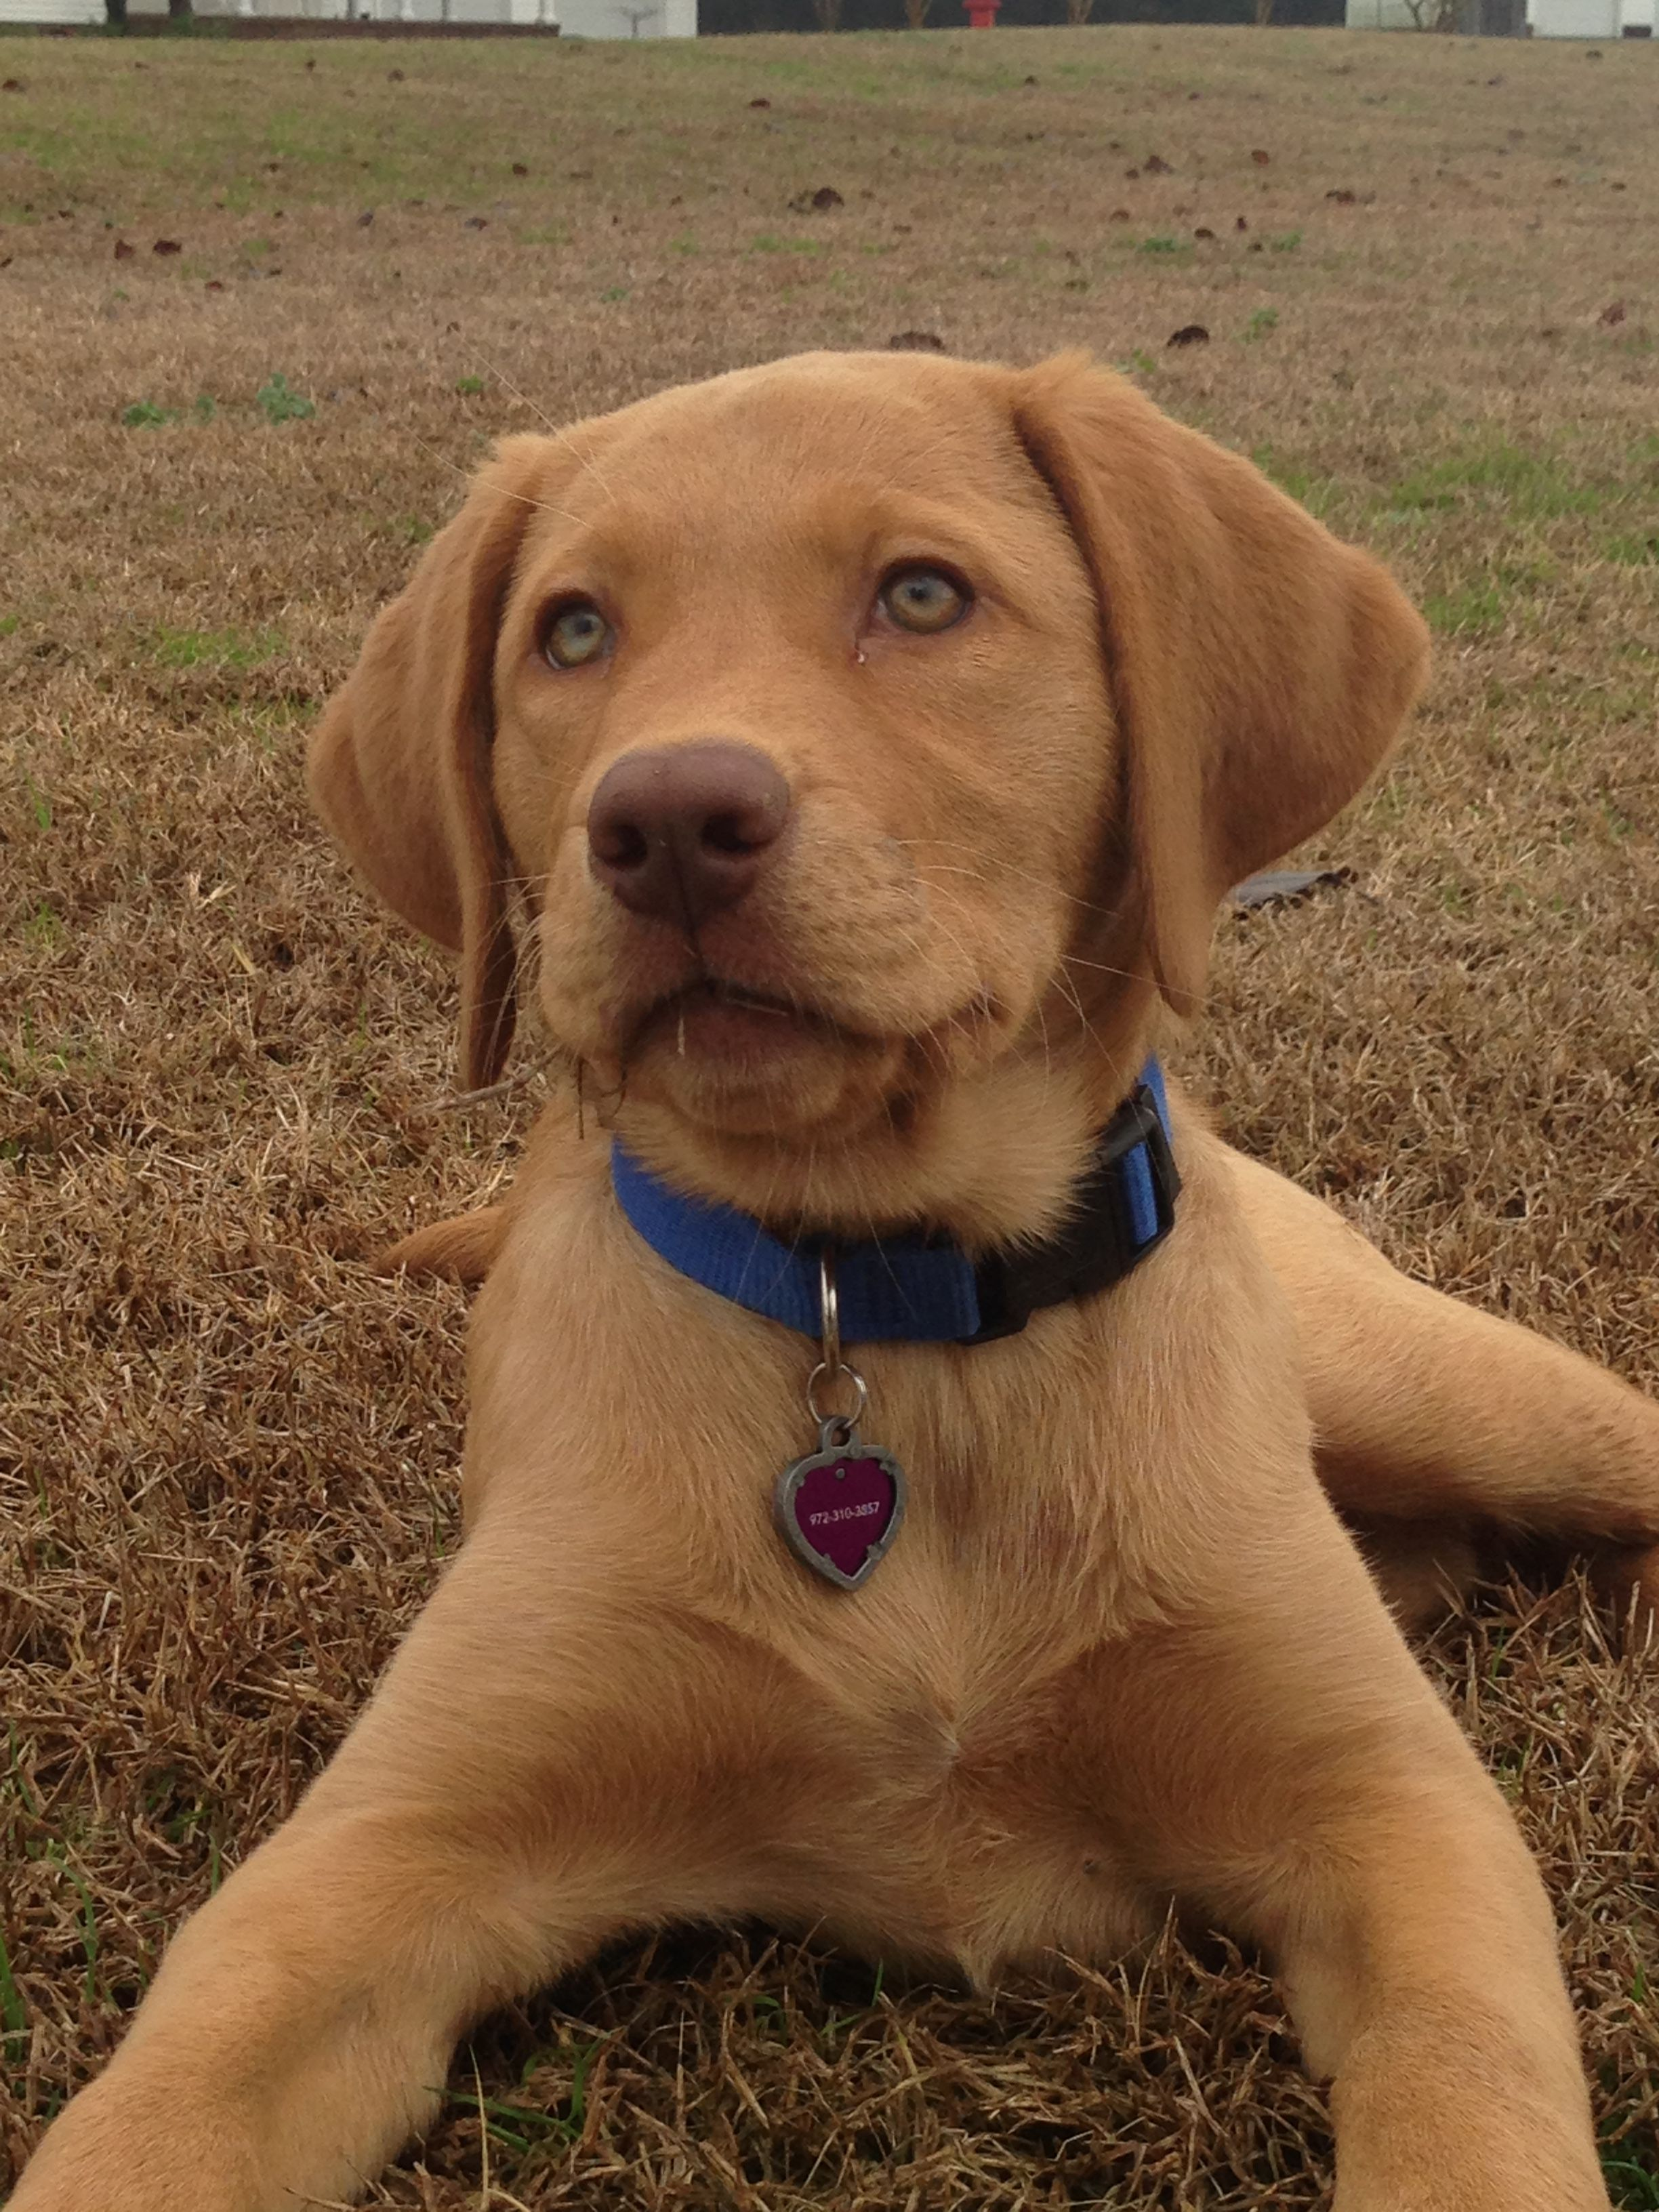 Fox red lab So cute!! … (With images) Fox red labrador